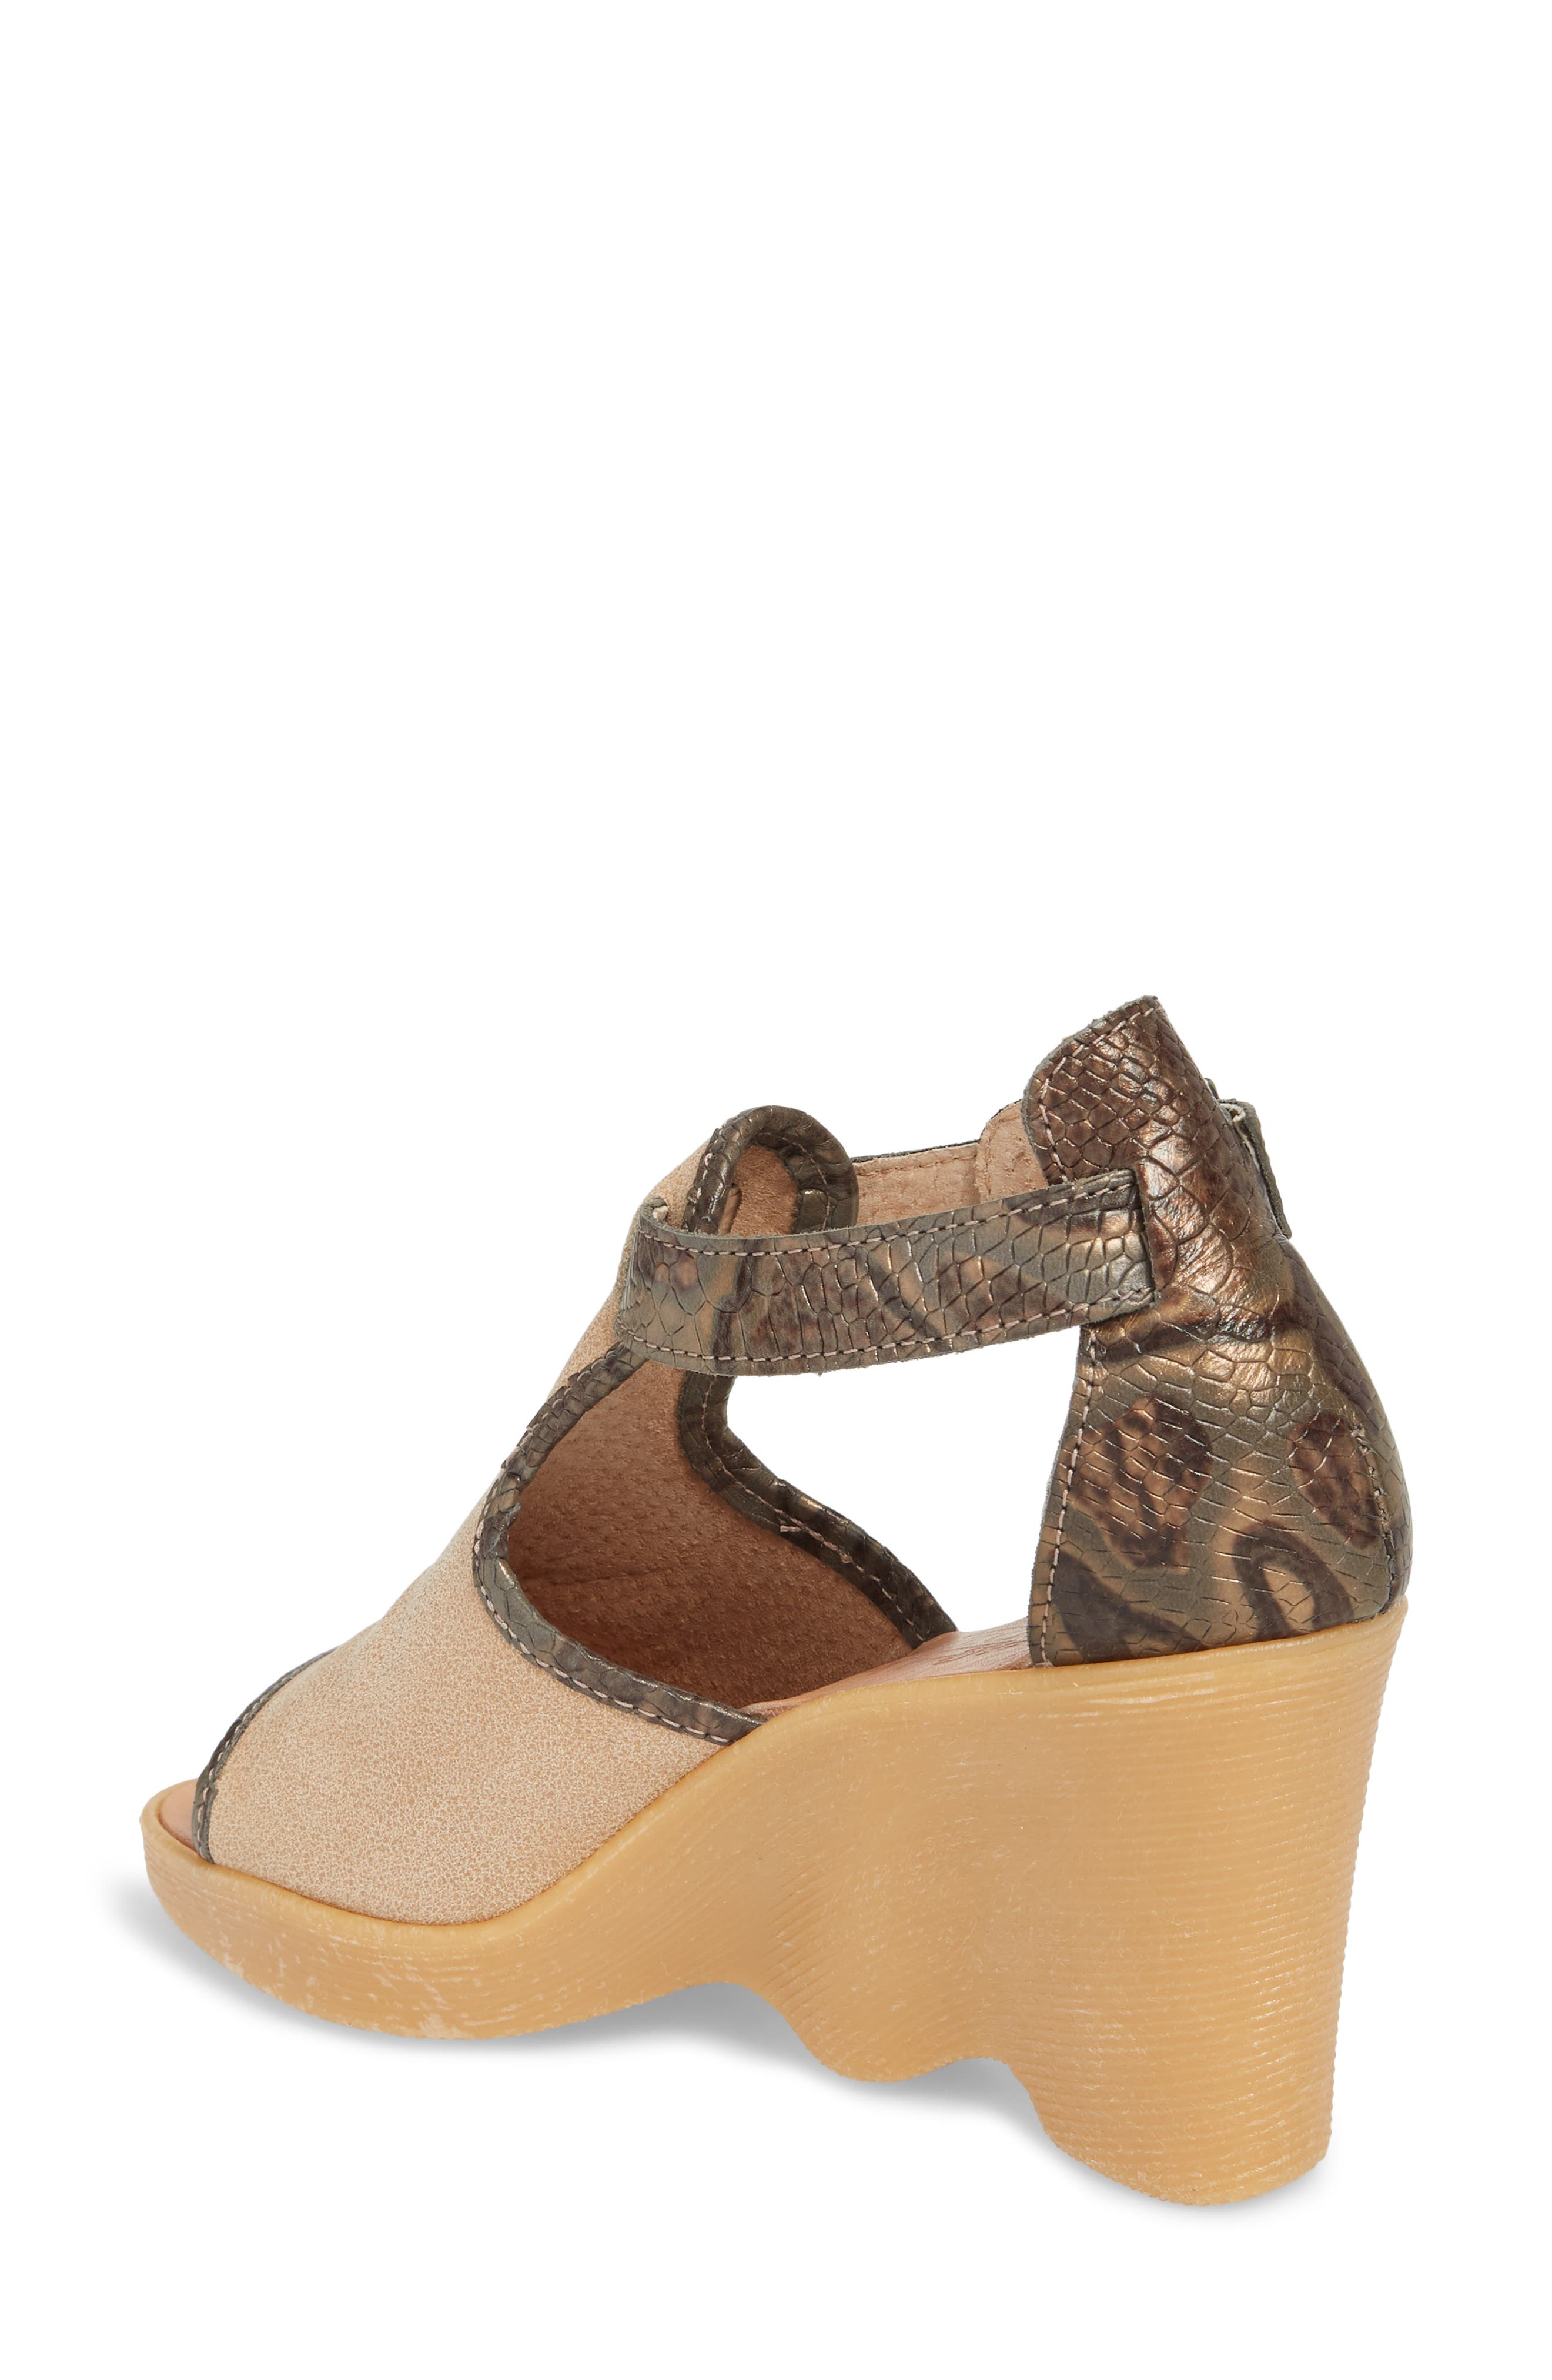 Queen Bee Wedge Sandal,                             Alternate thumbnail 2, color,                             Nude Mix Leather